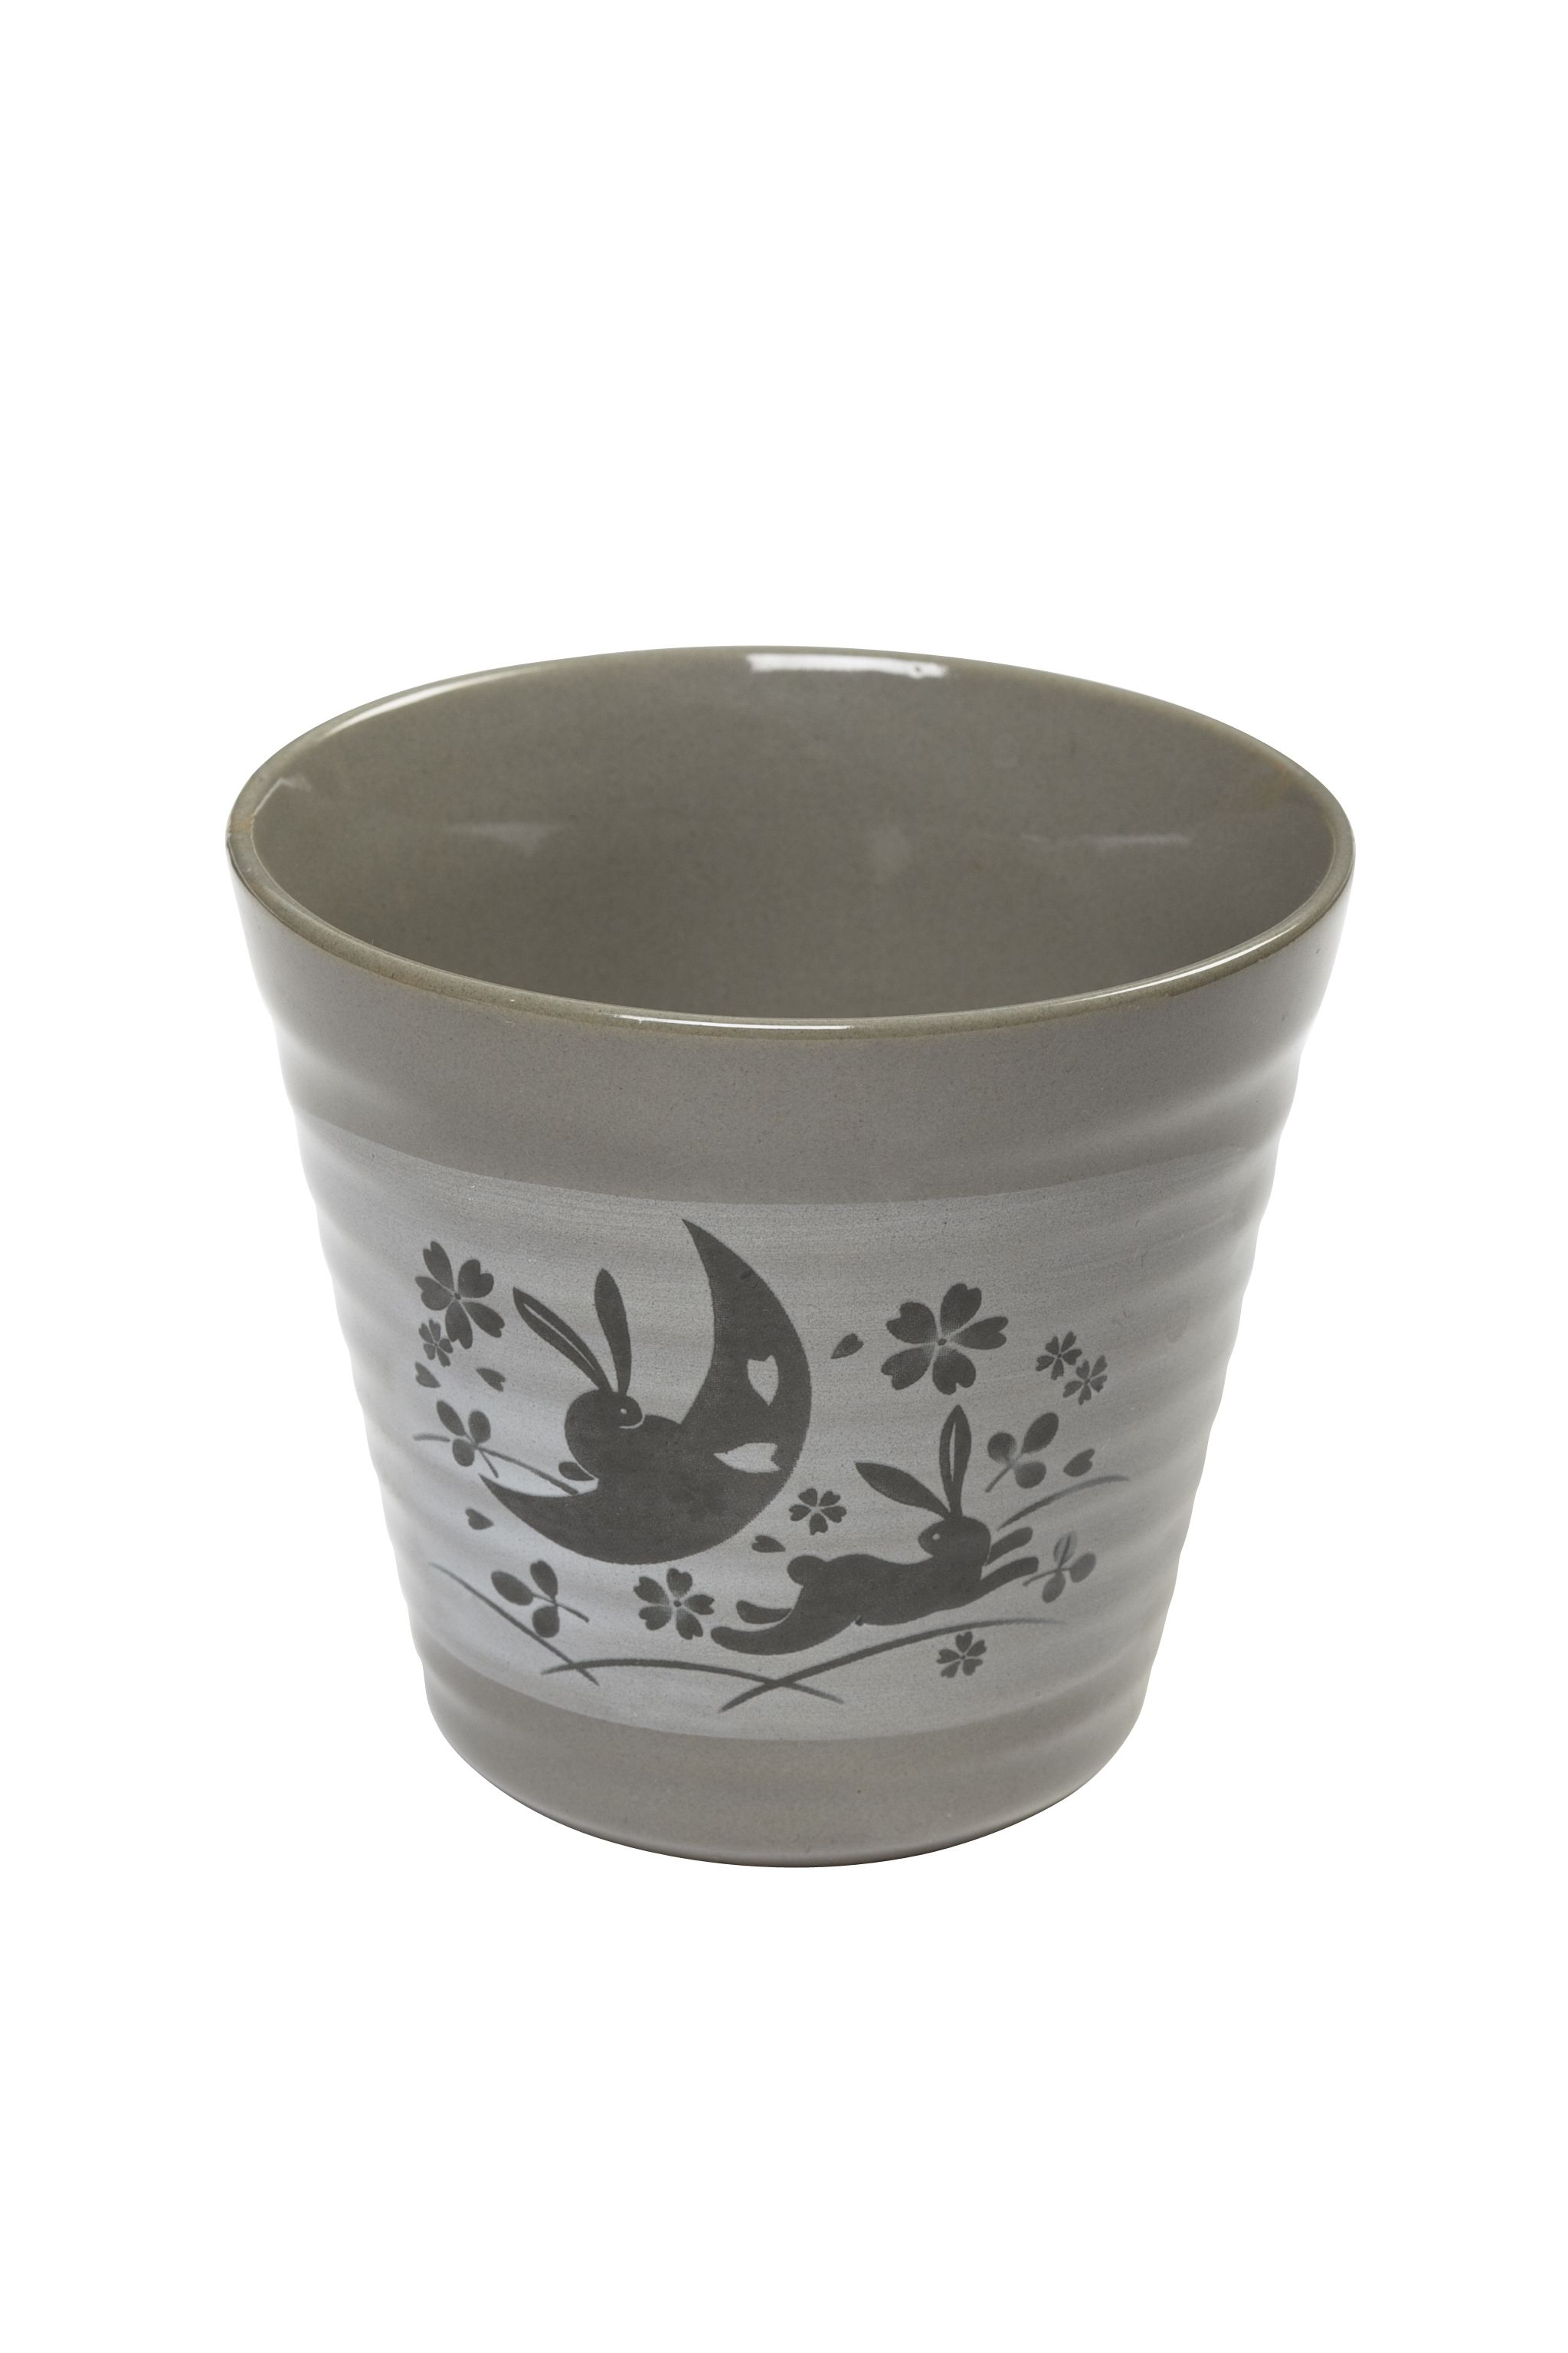 Japanese Stoneware Cup Sakura Usagi Japan Pinterest